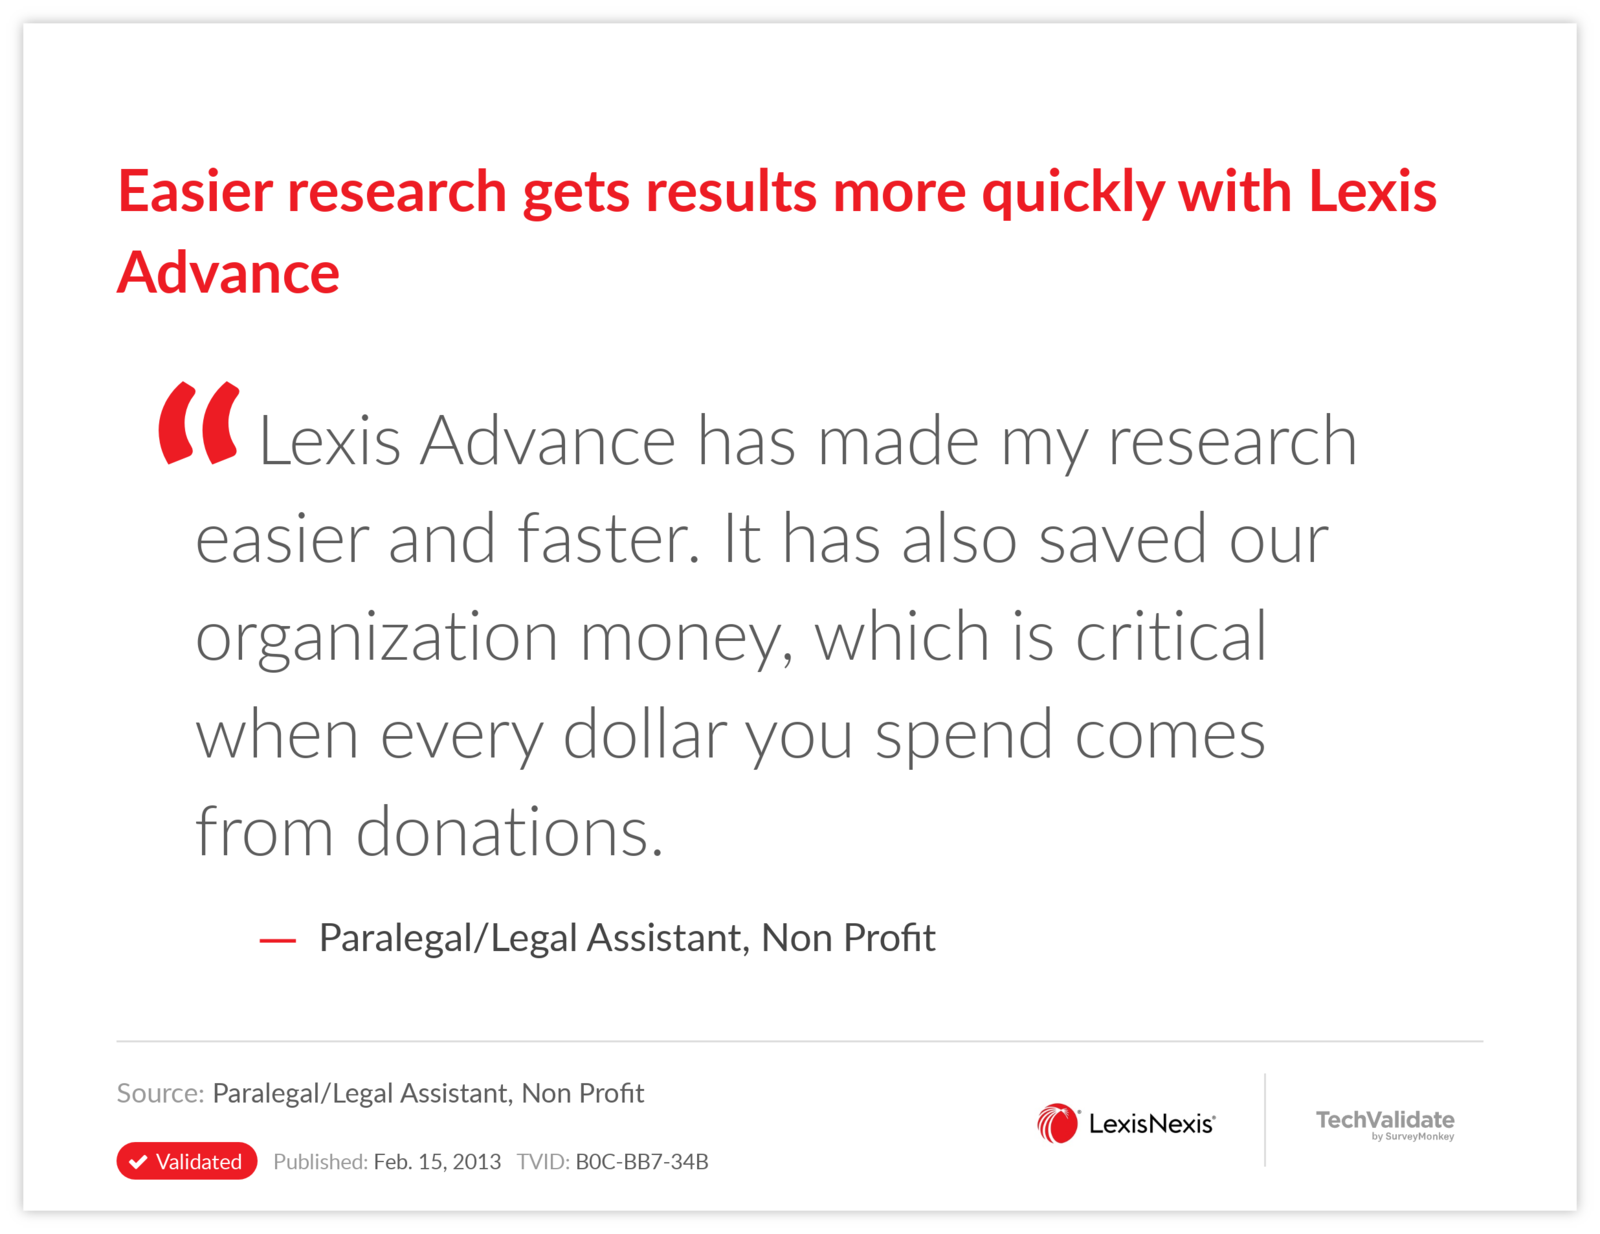 Easier research gets results more quickly with Lexis Advance